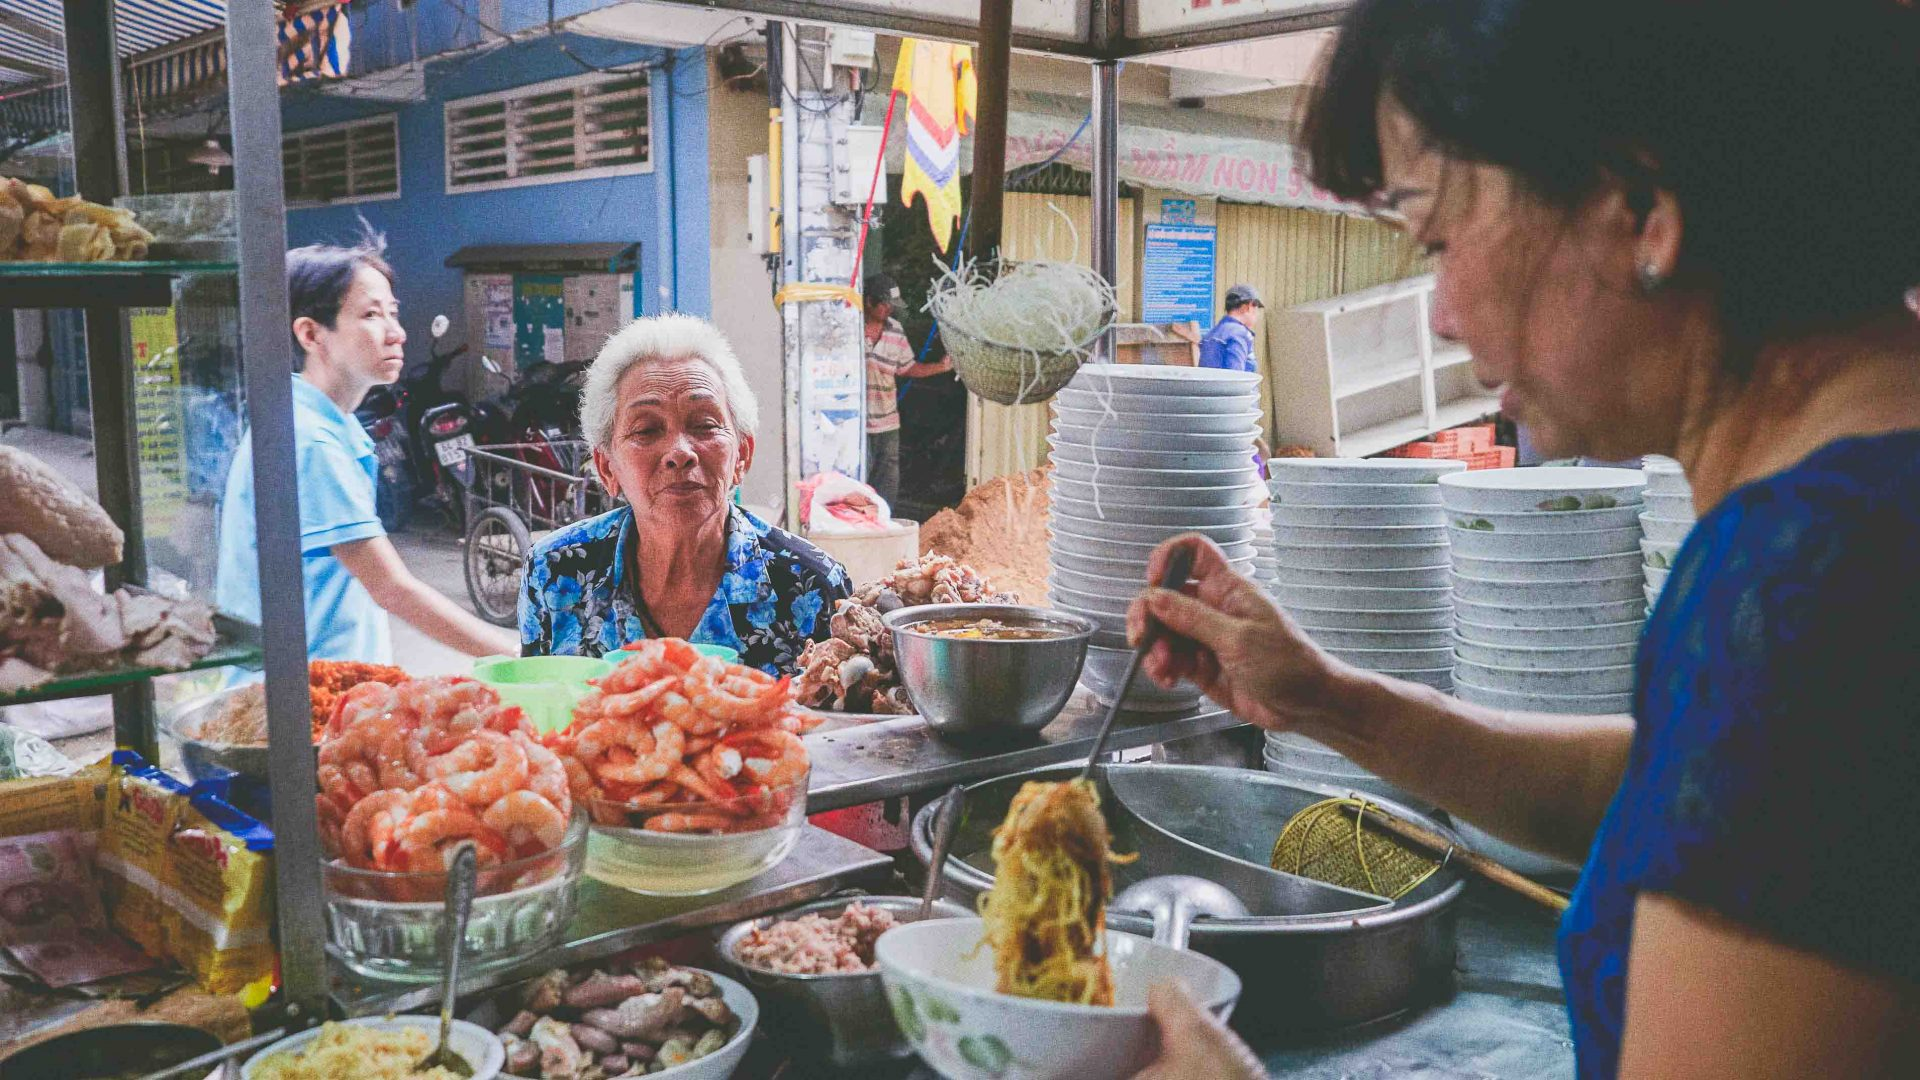 Ho Chi Minh street food: Vo Thi Ngoc Nhung's food cart, Amen, is one of Ho Chi Minh City's oldest food stalls.